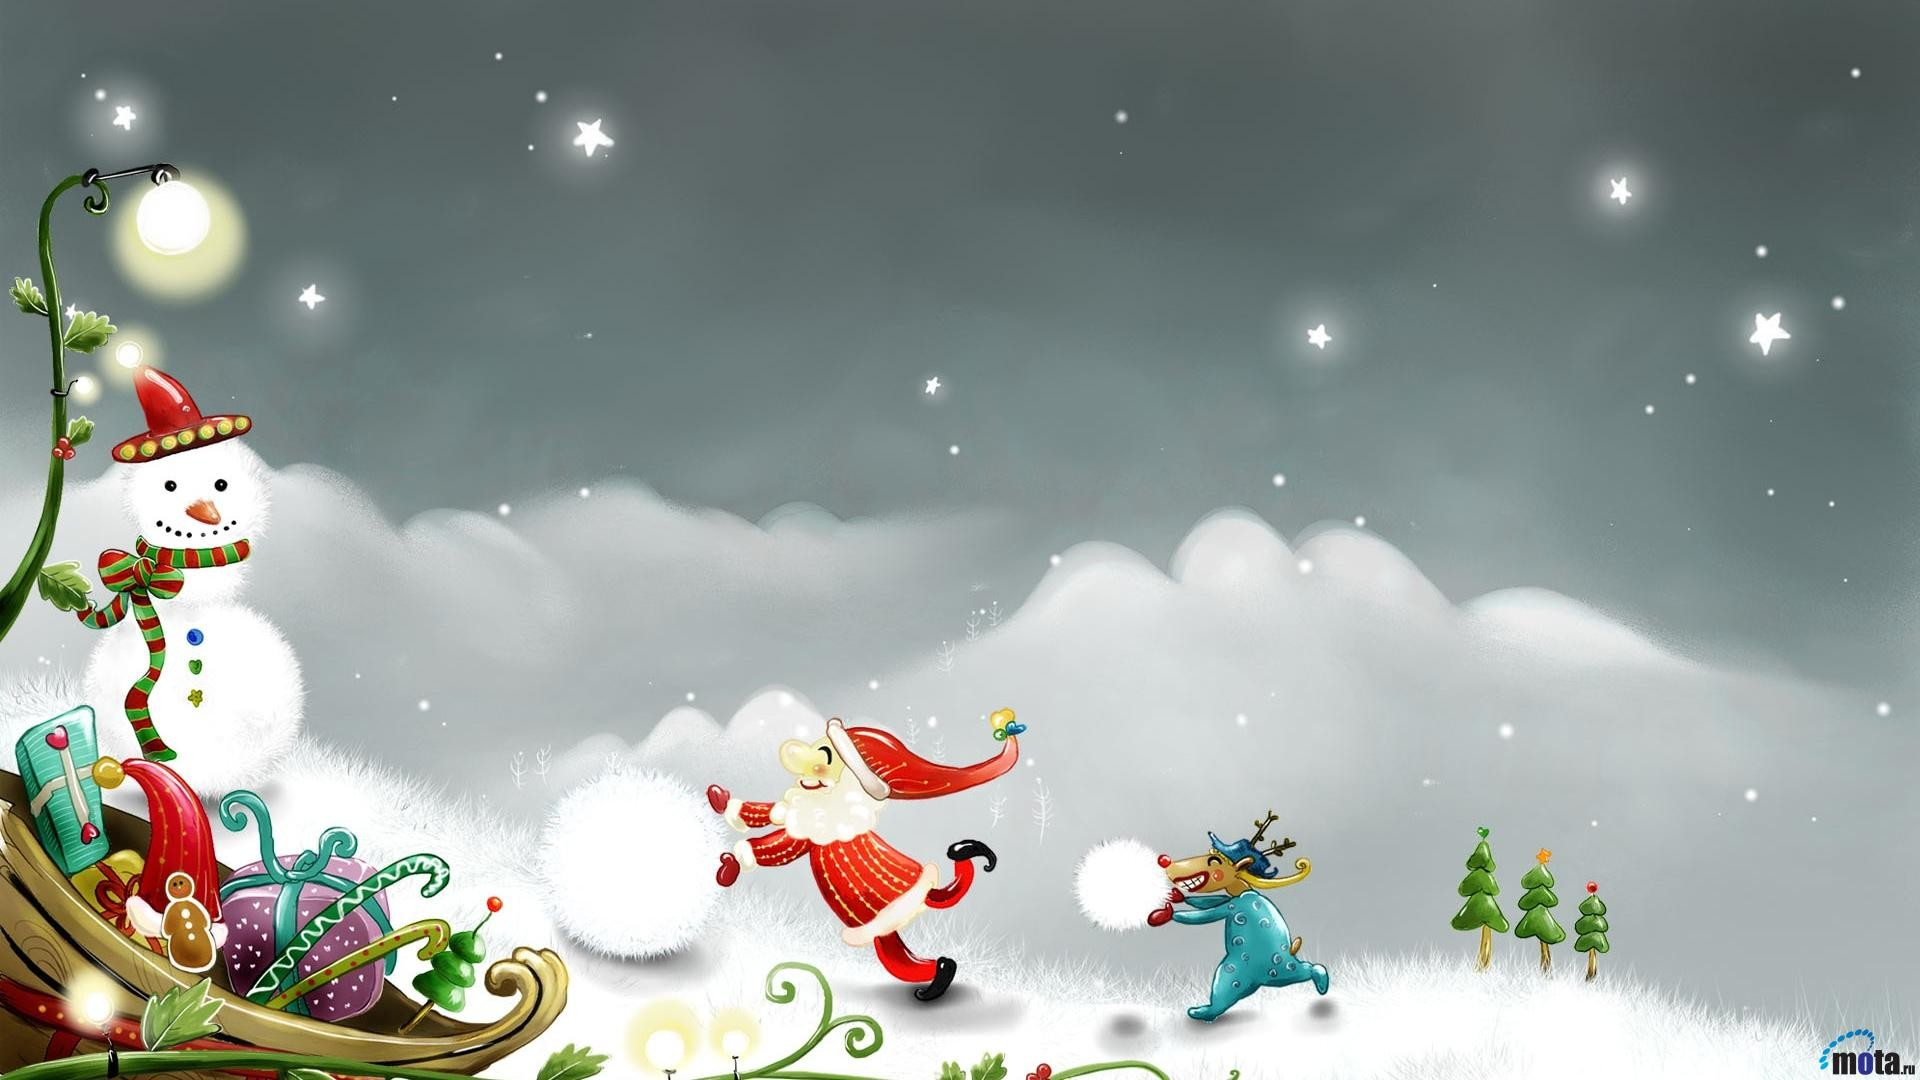 snow SANTA CLAUS IMAGES WALLPAPERS